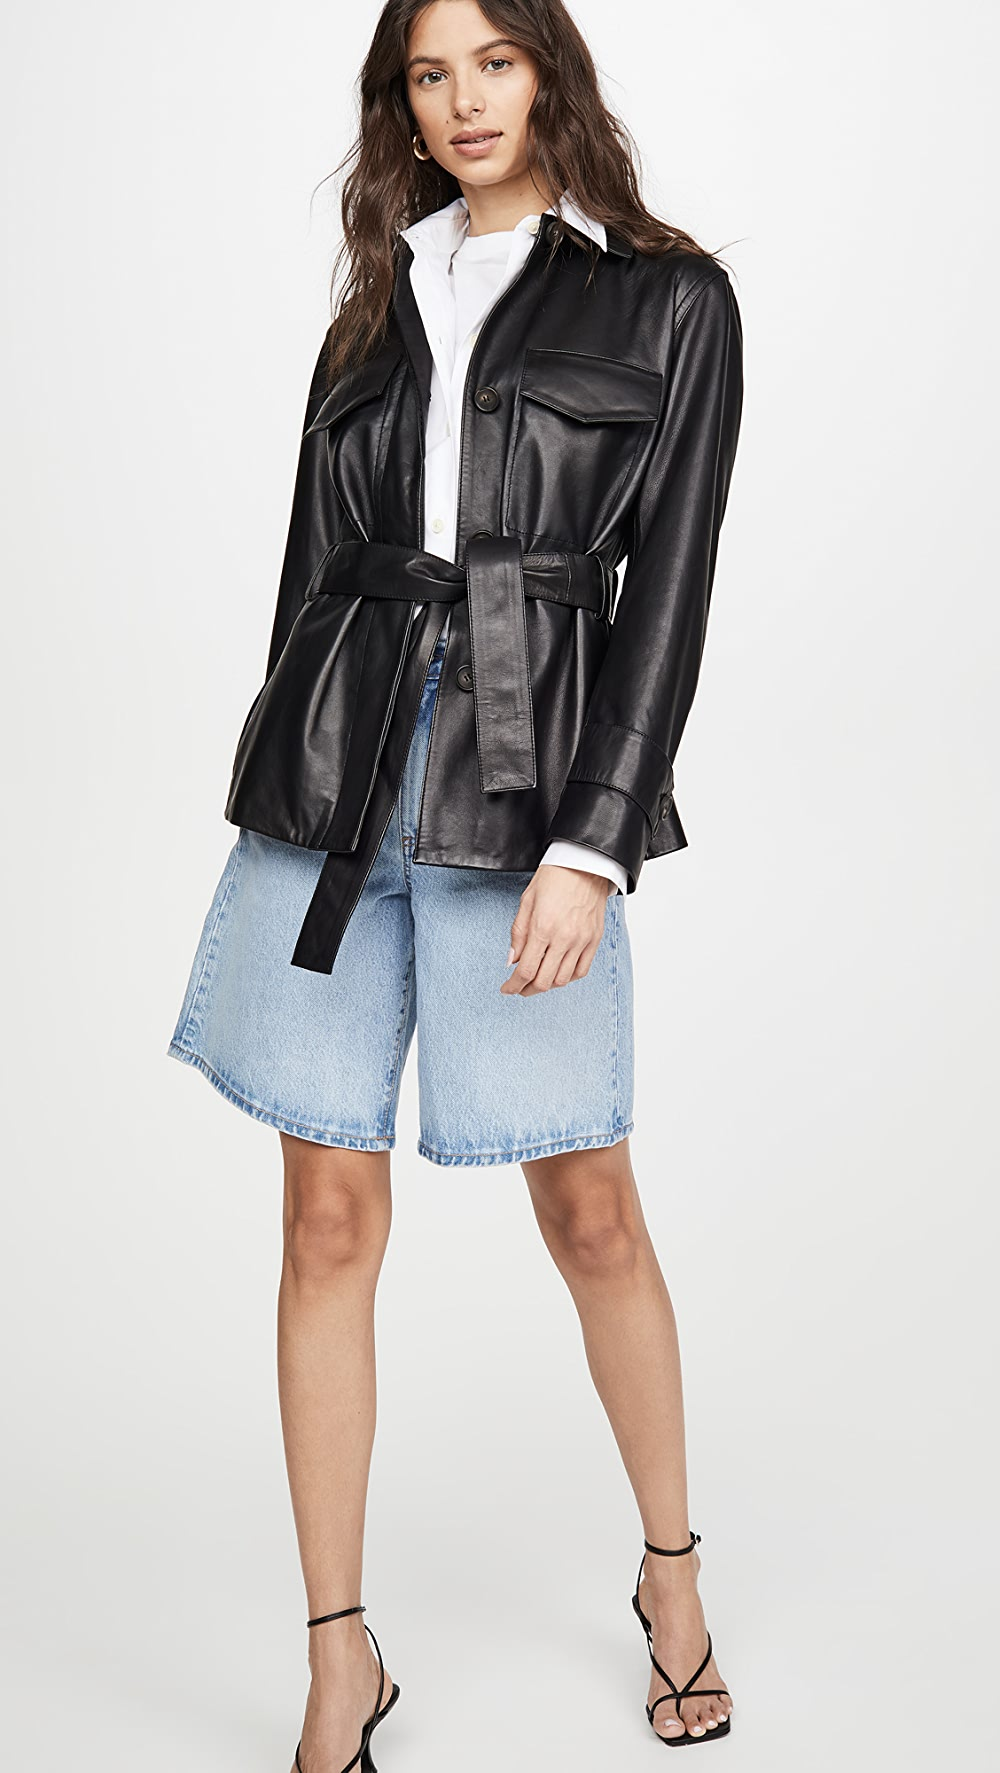 Able Vince - Leather Safari Jacket Curing Cough And Facilitating Expectoration And Relieving Hoarseness